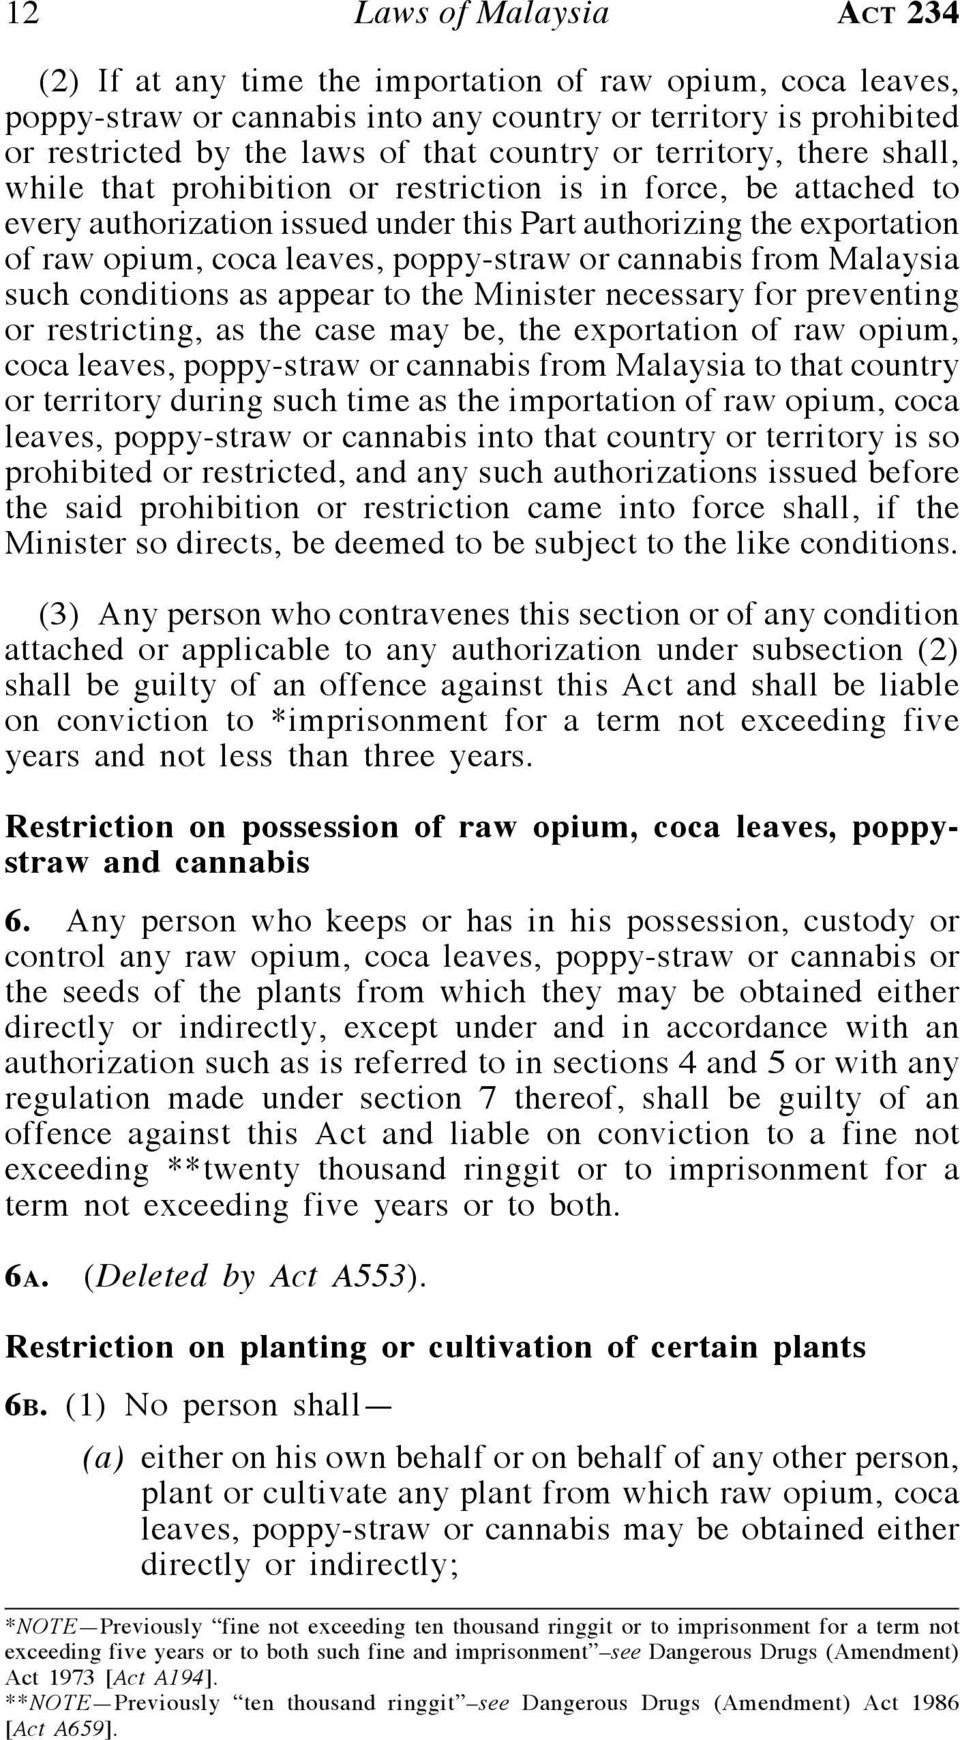 poppy-straw or cannabis from Malaysia such conditions as appear to the Minister necessary for preventing or restricting, as the case may be, the exportation of raw opium, coca leaves, poppy-straw or